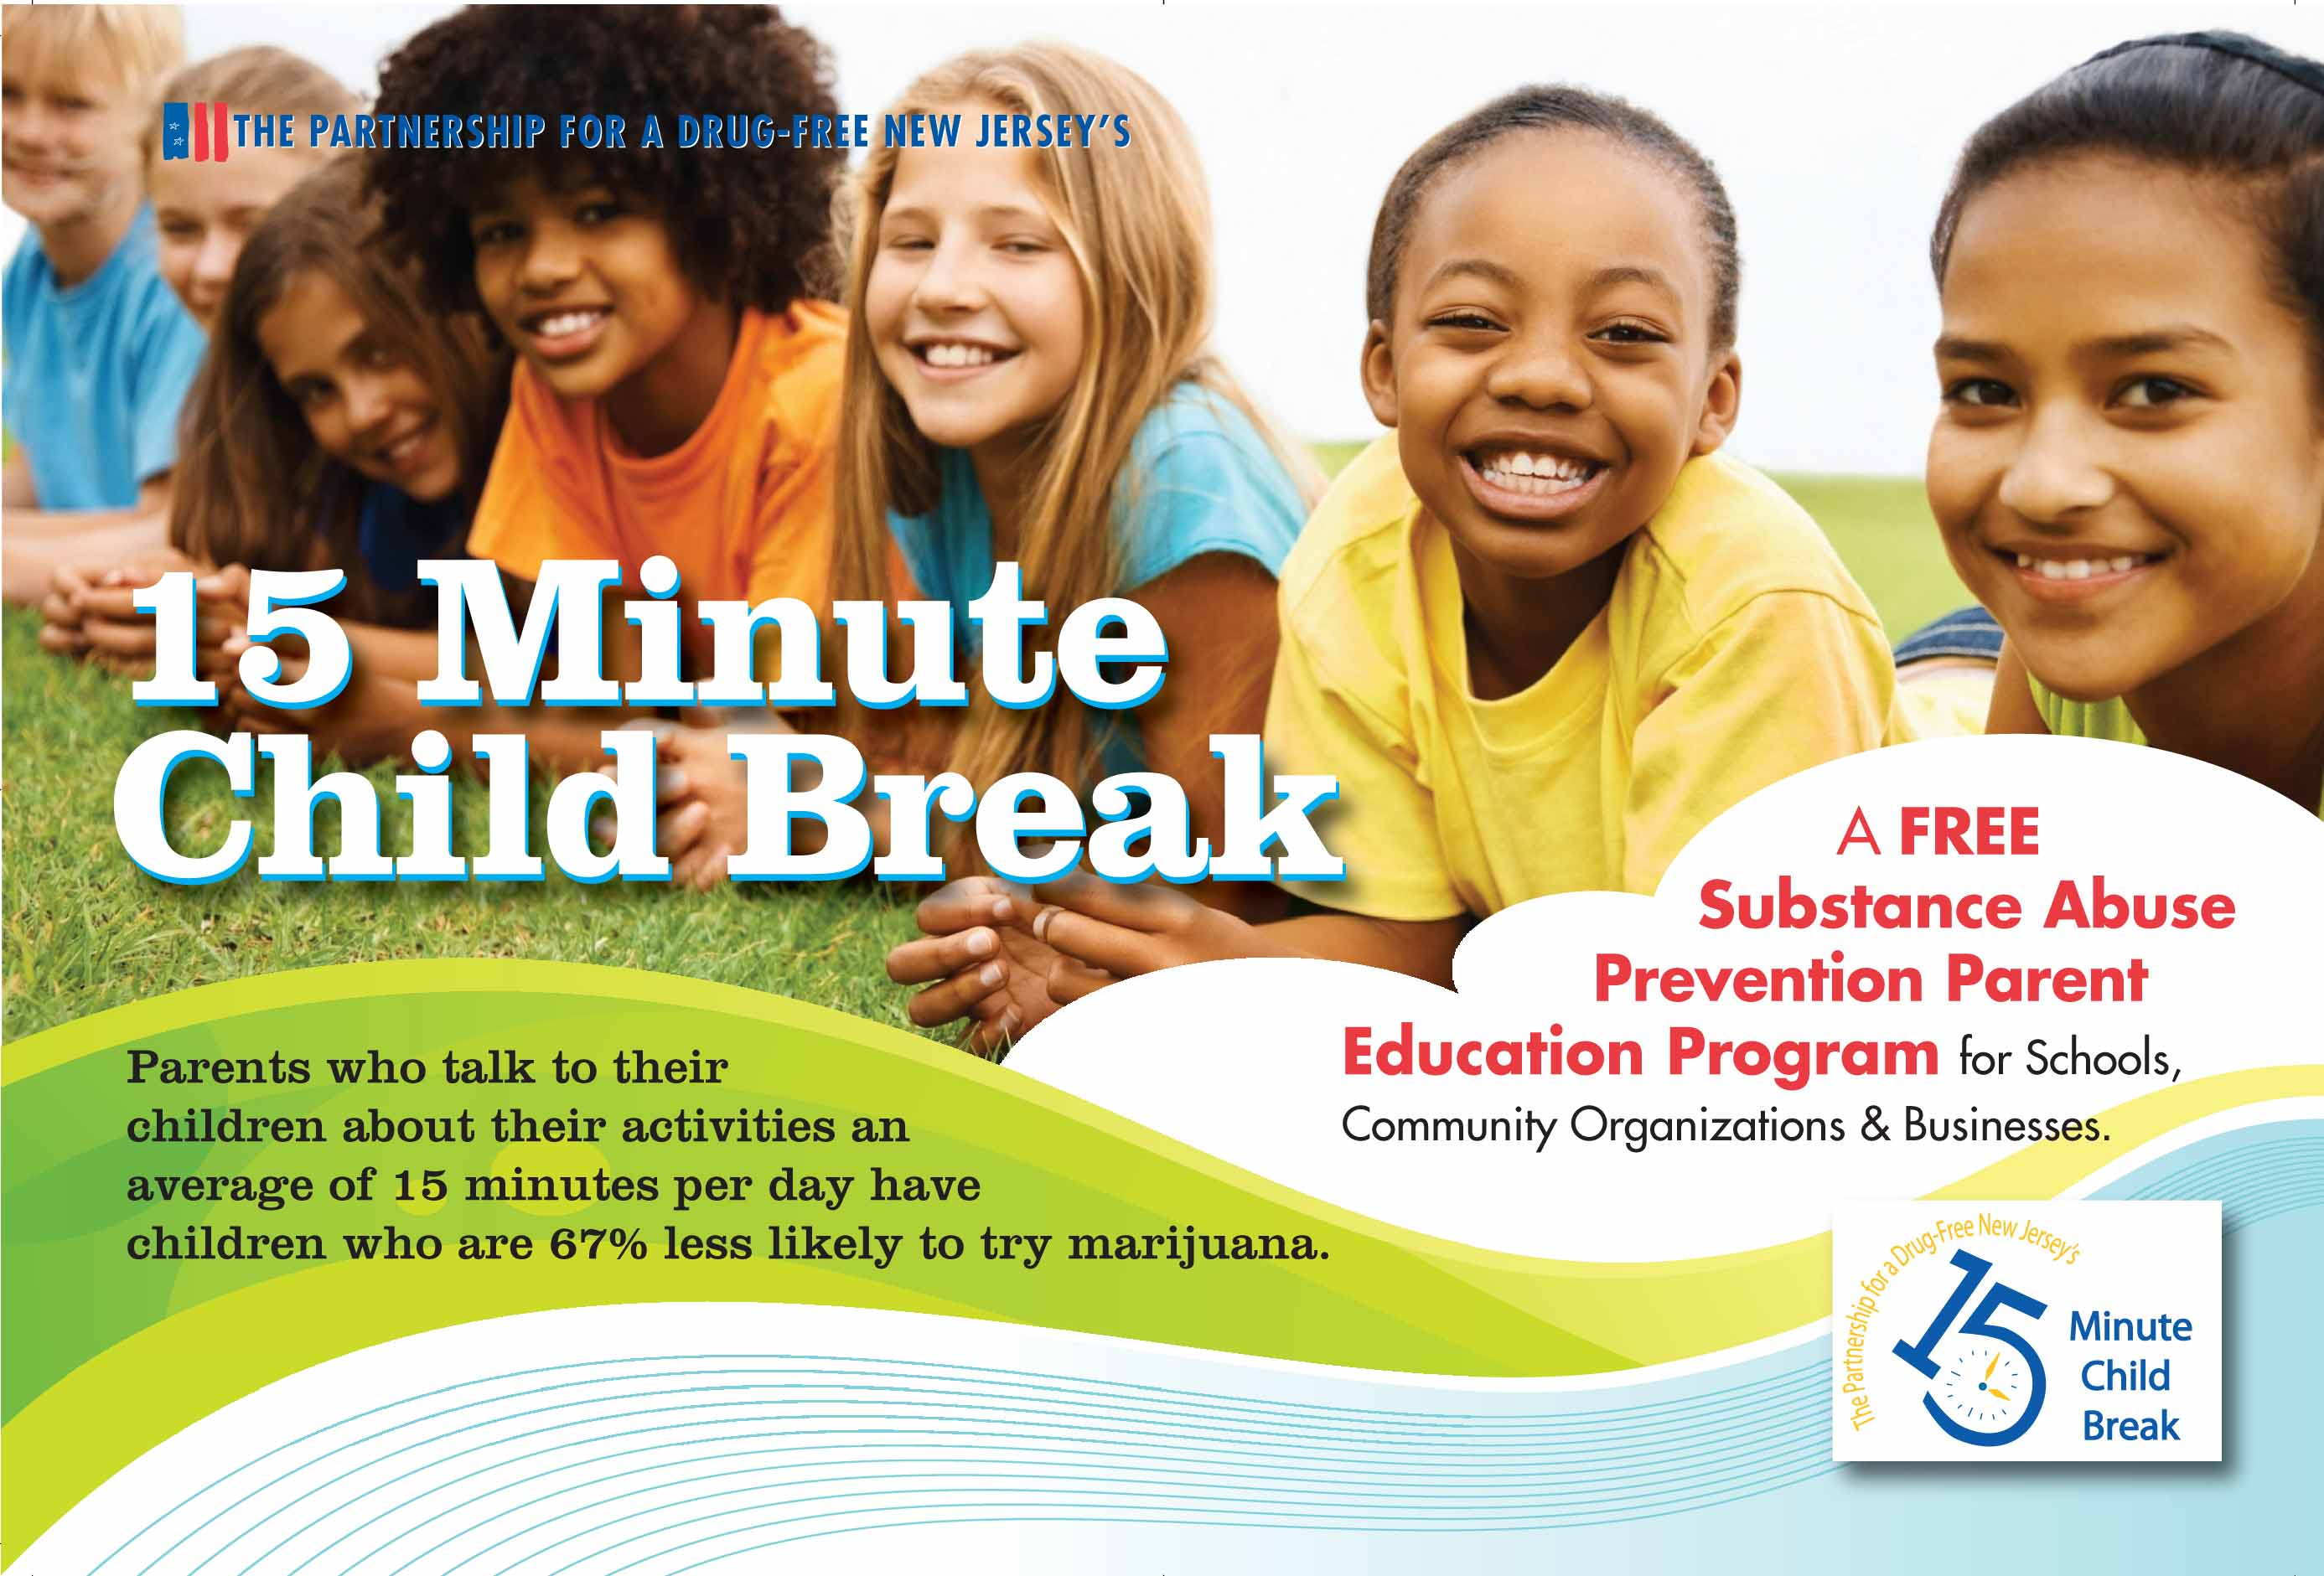 the 15 minute child break - Children Images Free